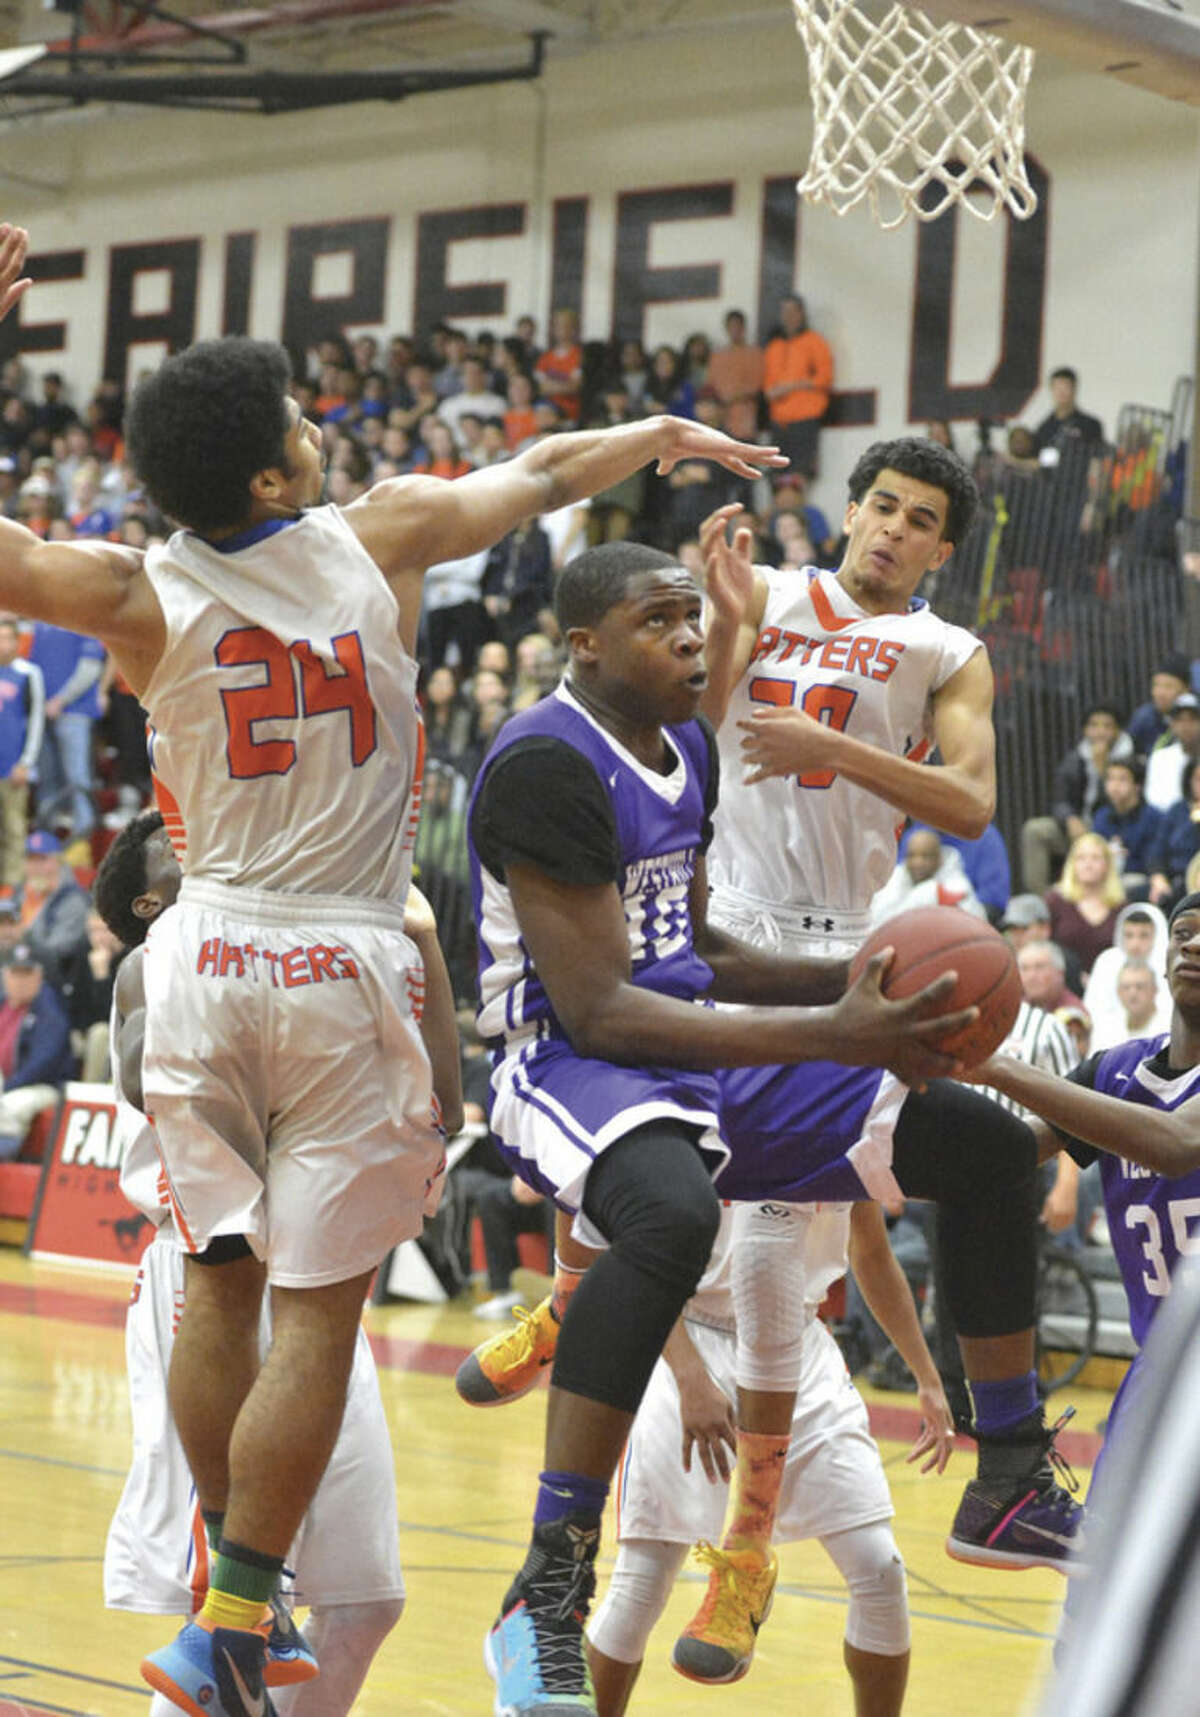 Westhill's Tyrell Alexander tries to put up a shot between two Danbury defenders during Thursday's game.